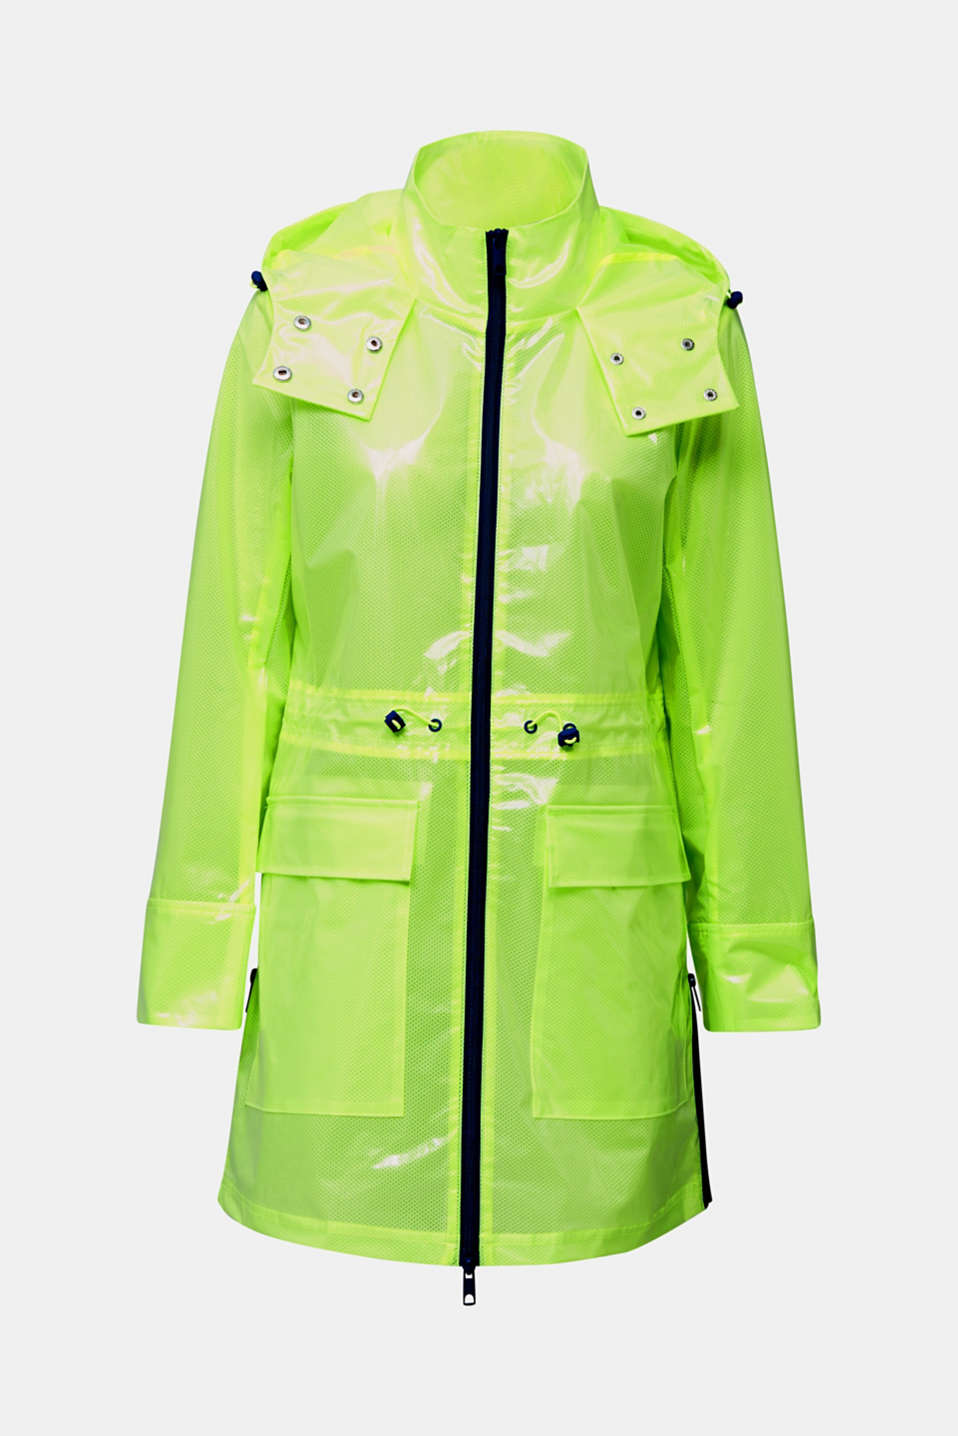 NEON rain jacket with mesh lining, LIME YELLOW, detail image number 8